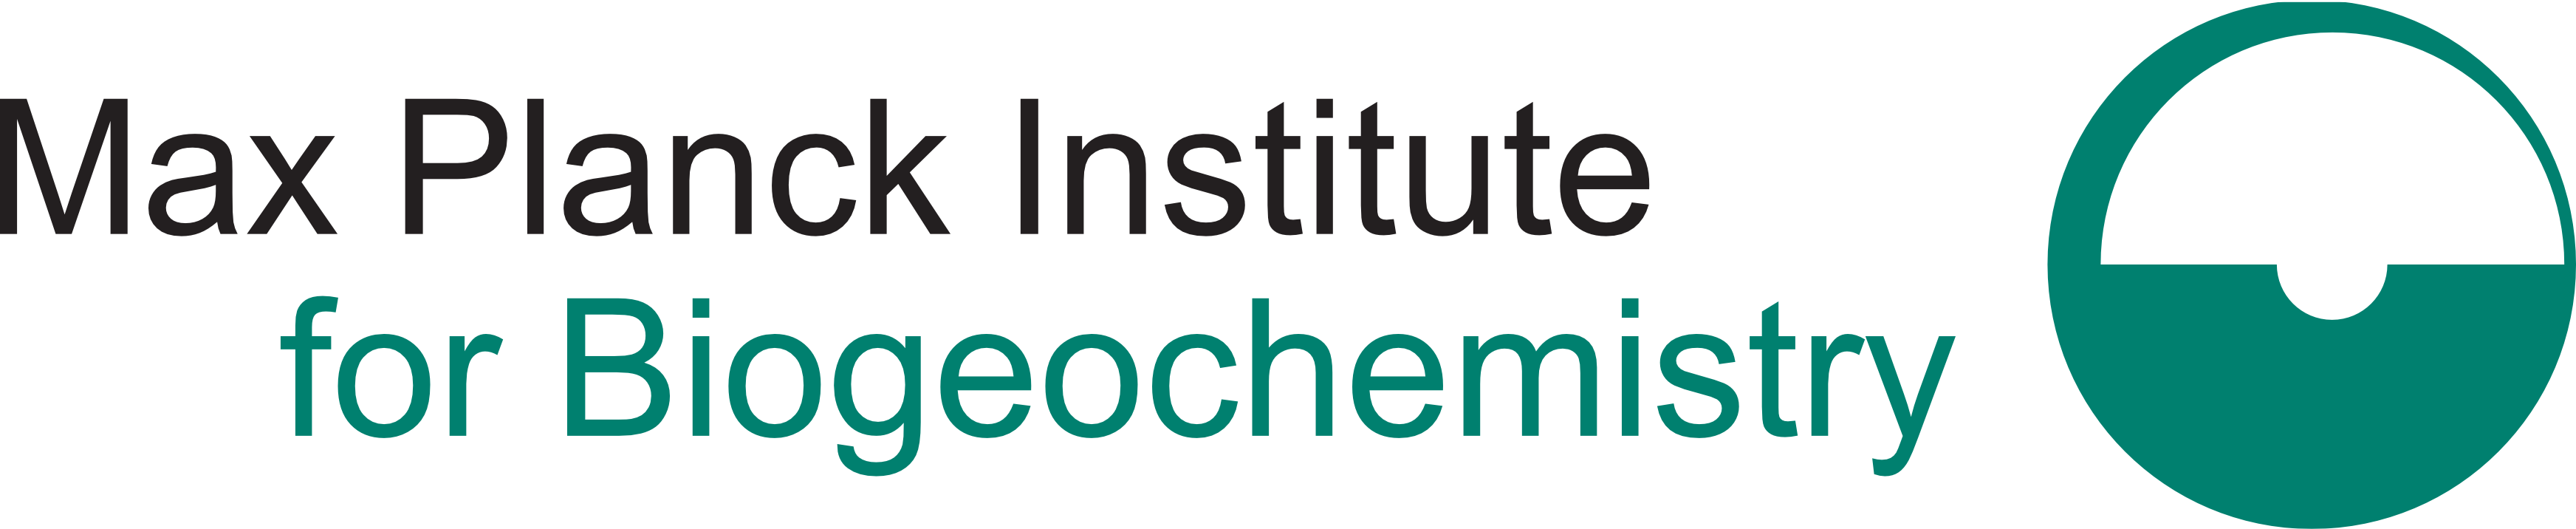 Logo Max-Planck-Institute for Biogeochemistry